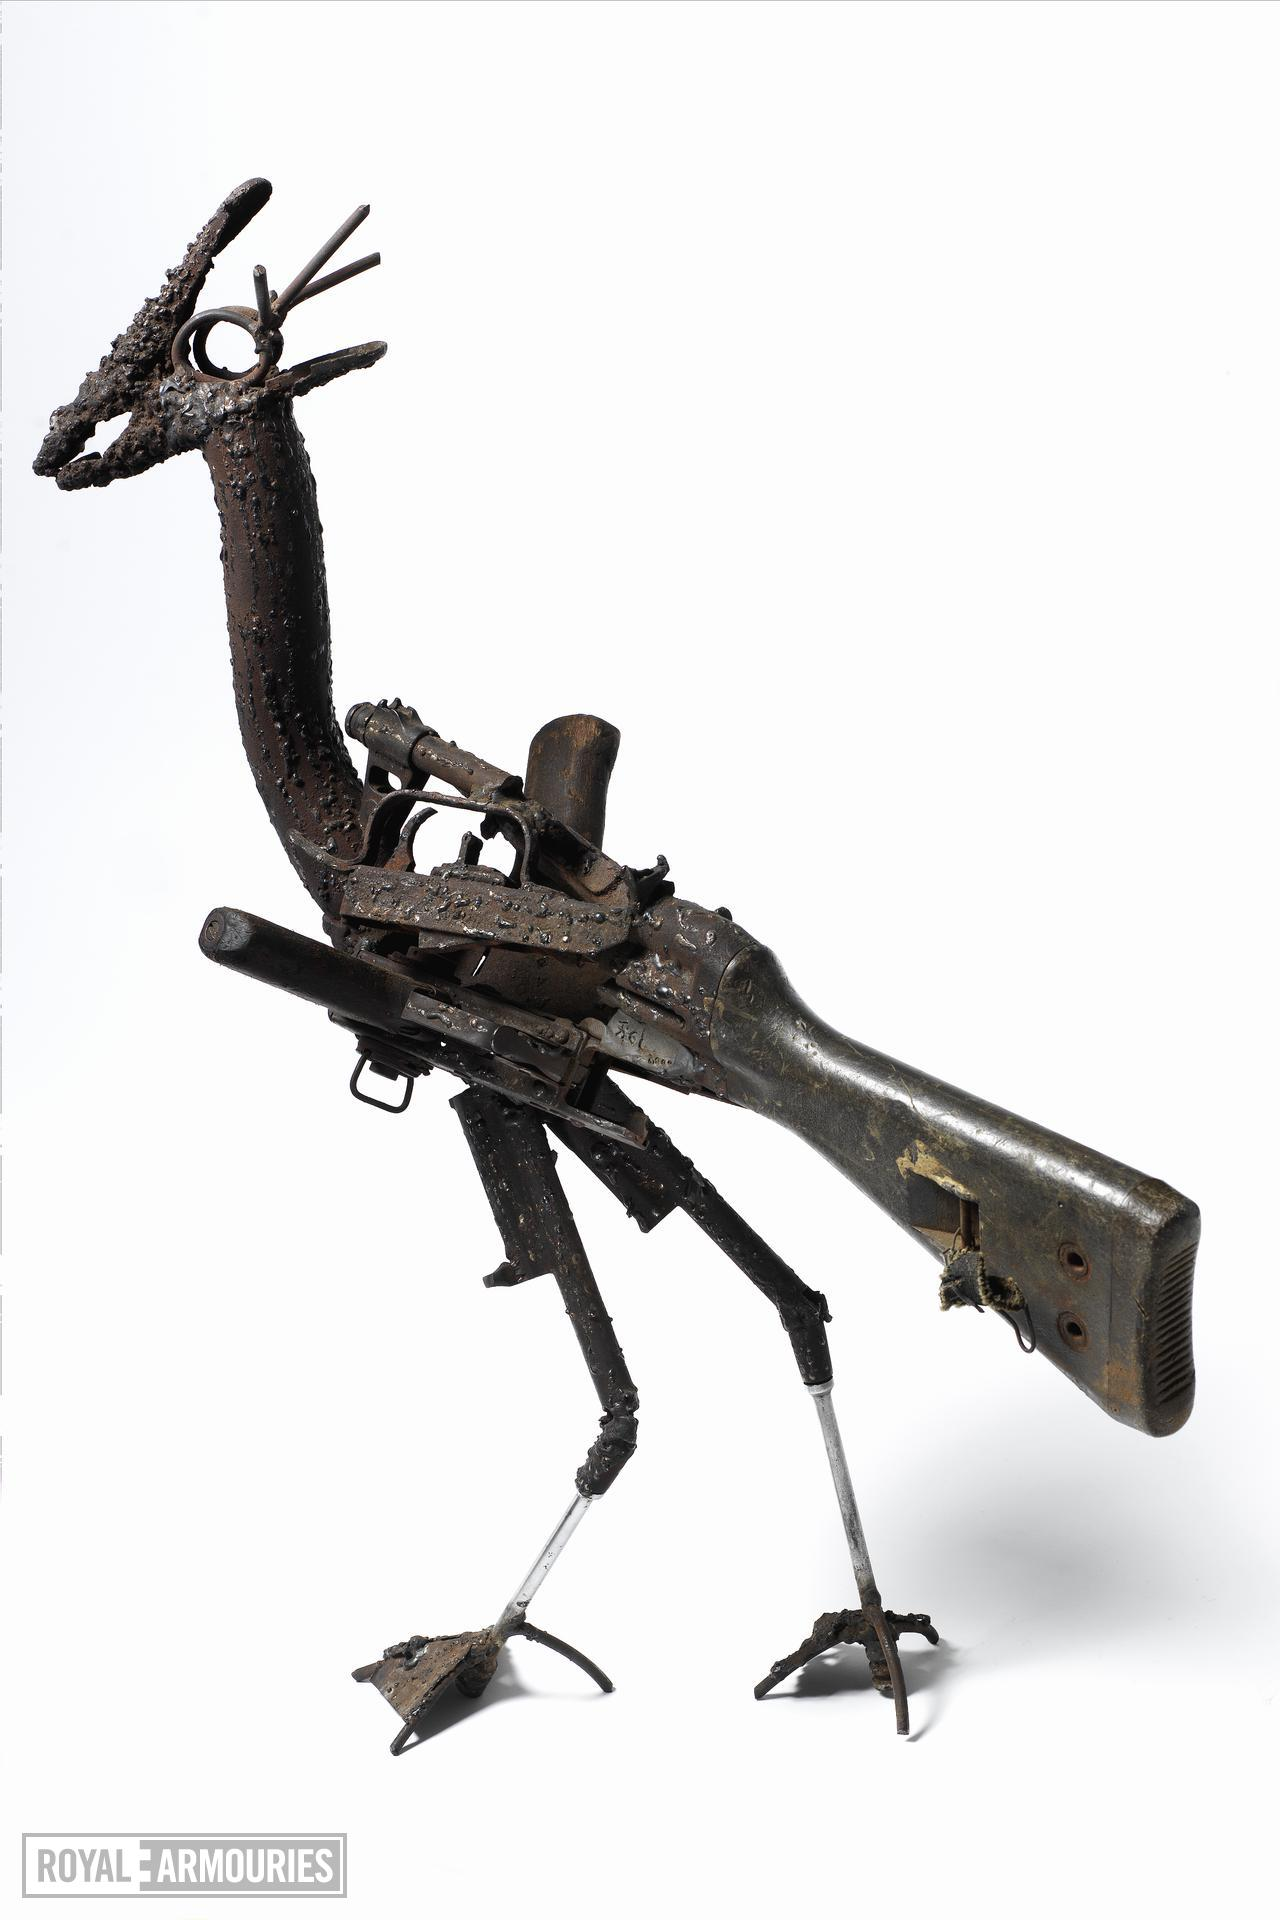 Sculpture - Bird that Wants to Survive An impression of a Black Winged Stilt bird made with firearm parts exchanged with Mozambican citizens in exchange for tools and bicycles supplied by western NGOs. By Fiel Dos Santos.